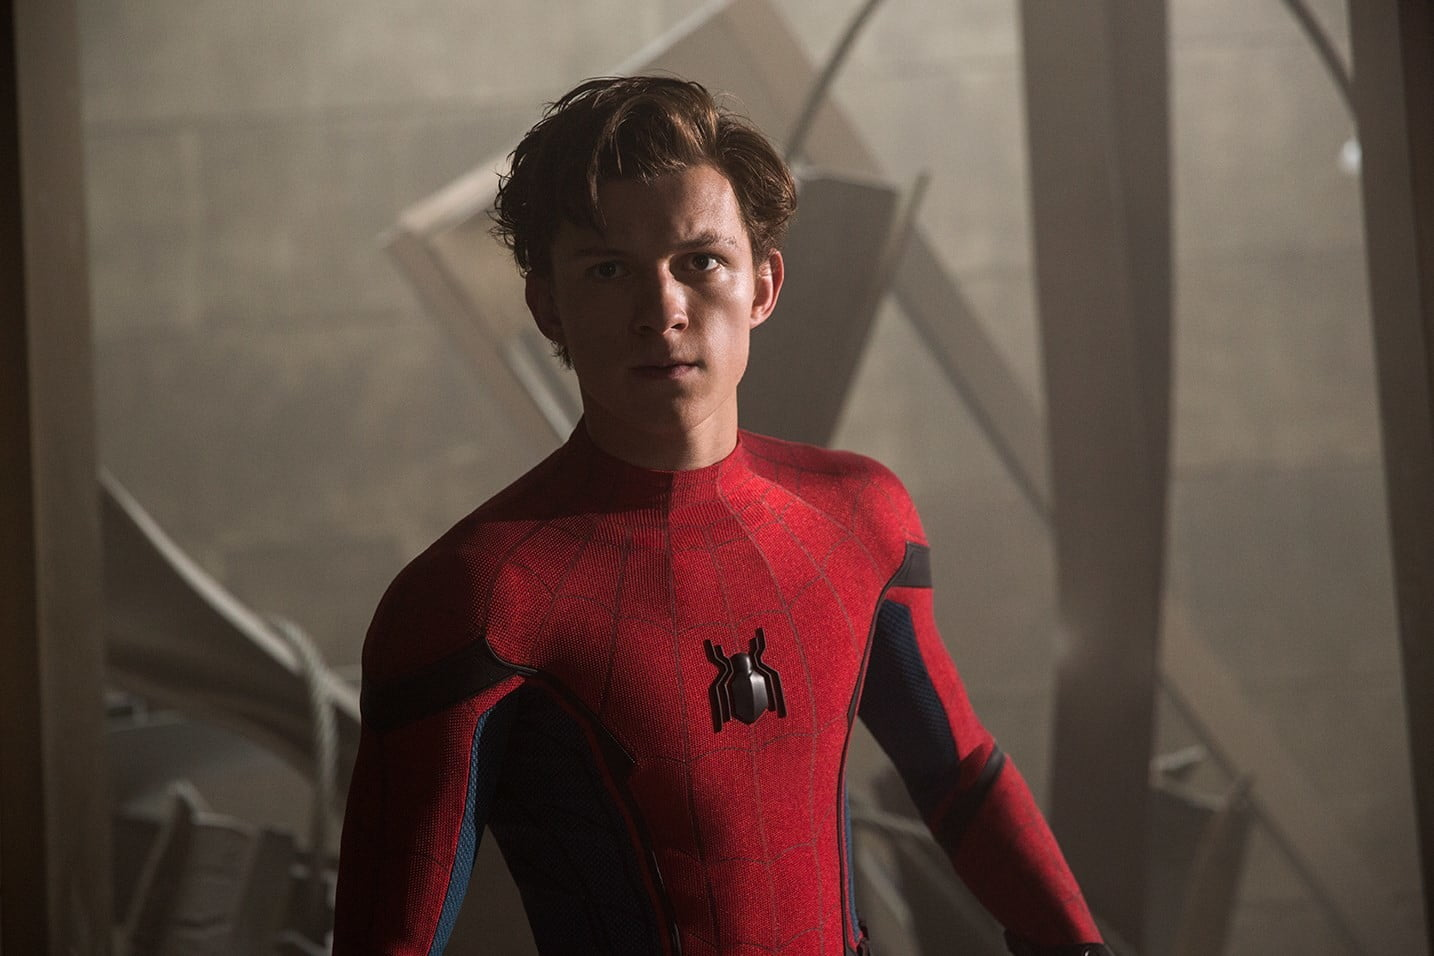 spider-man: far from home' : everything we know about the movie